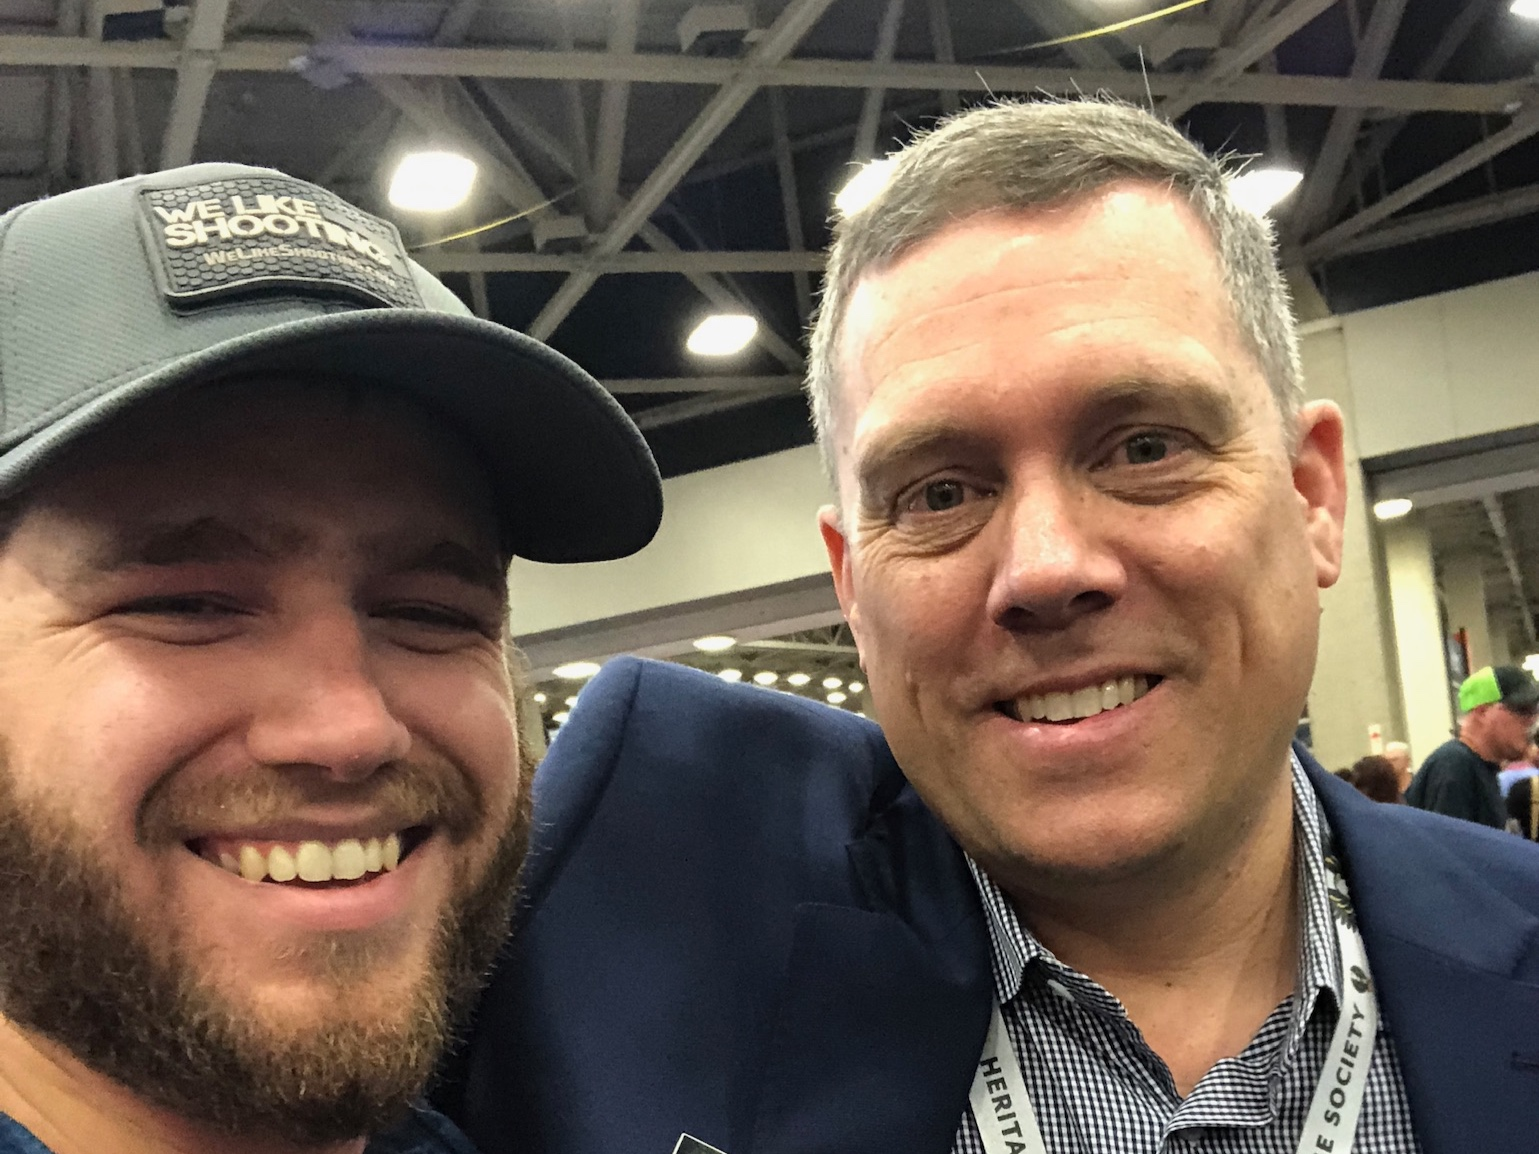 State of the 2nd - Nick Lynch & Timothy Knight focus on state level gun rights groups and what they have to share so that we can all learn from each other.